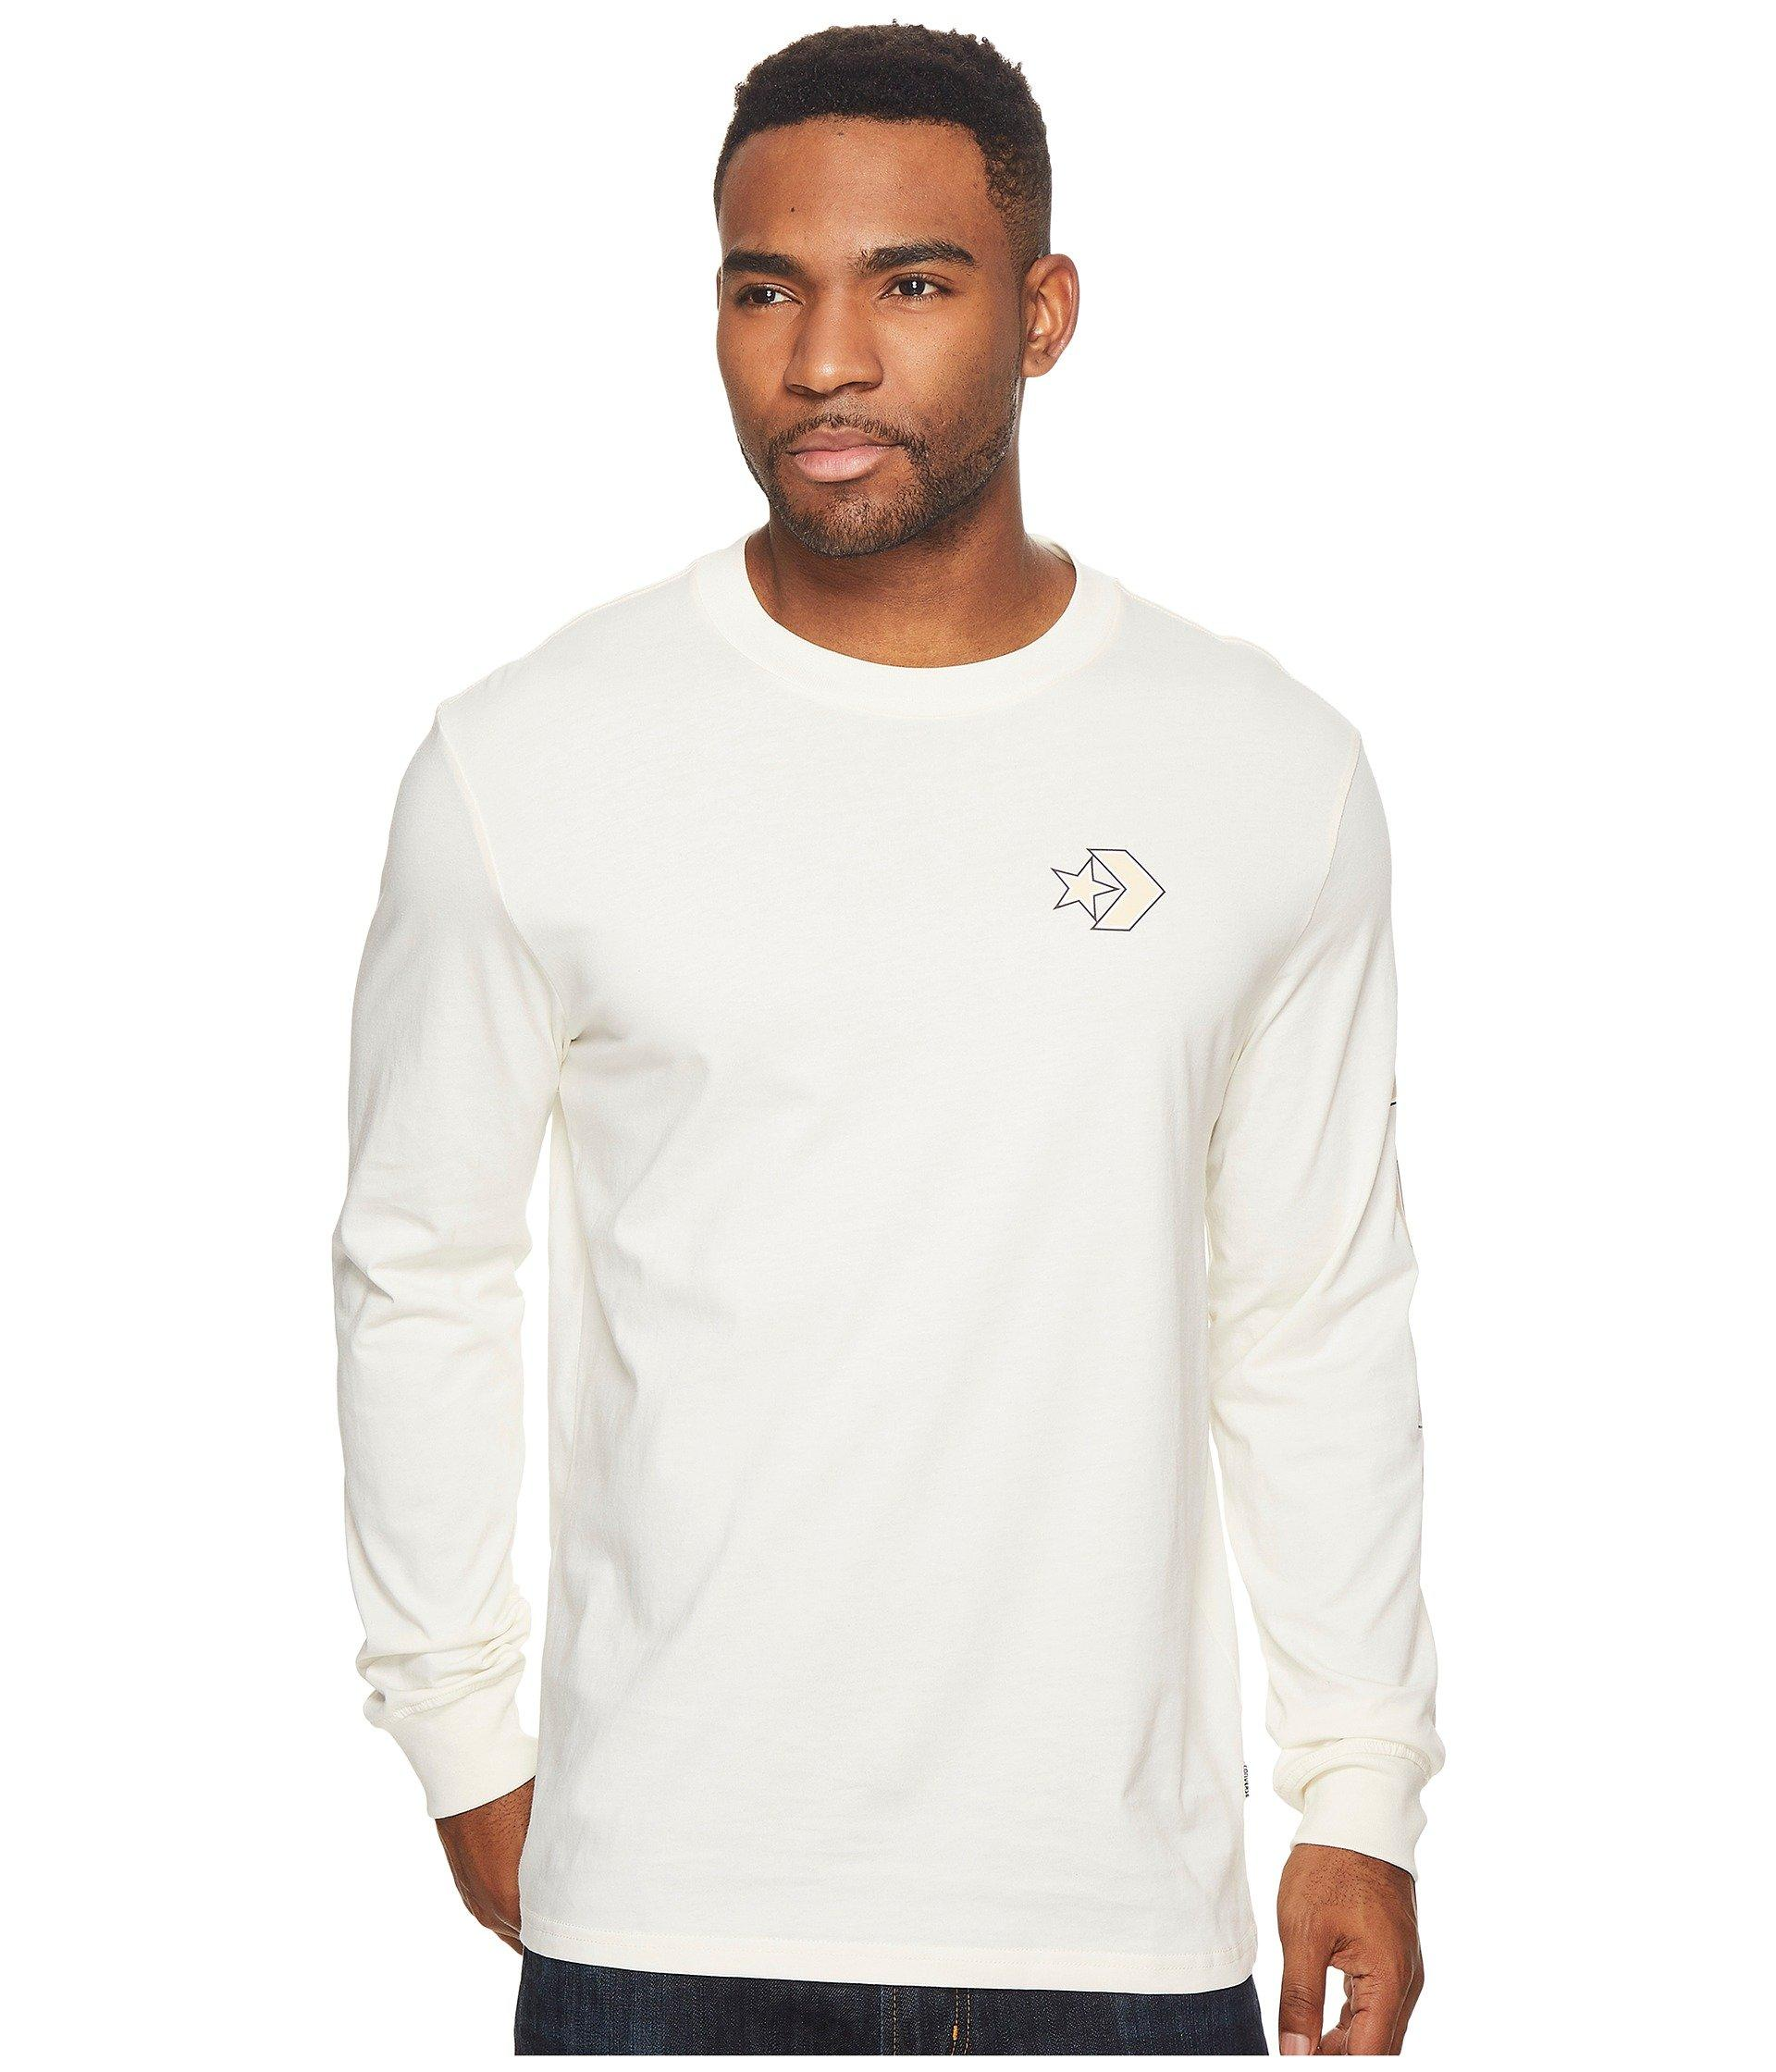 7a1661a8fe42f0 Lyst - Converse Cons Wordmark Long Sleeve T-shirt in White for Men